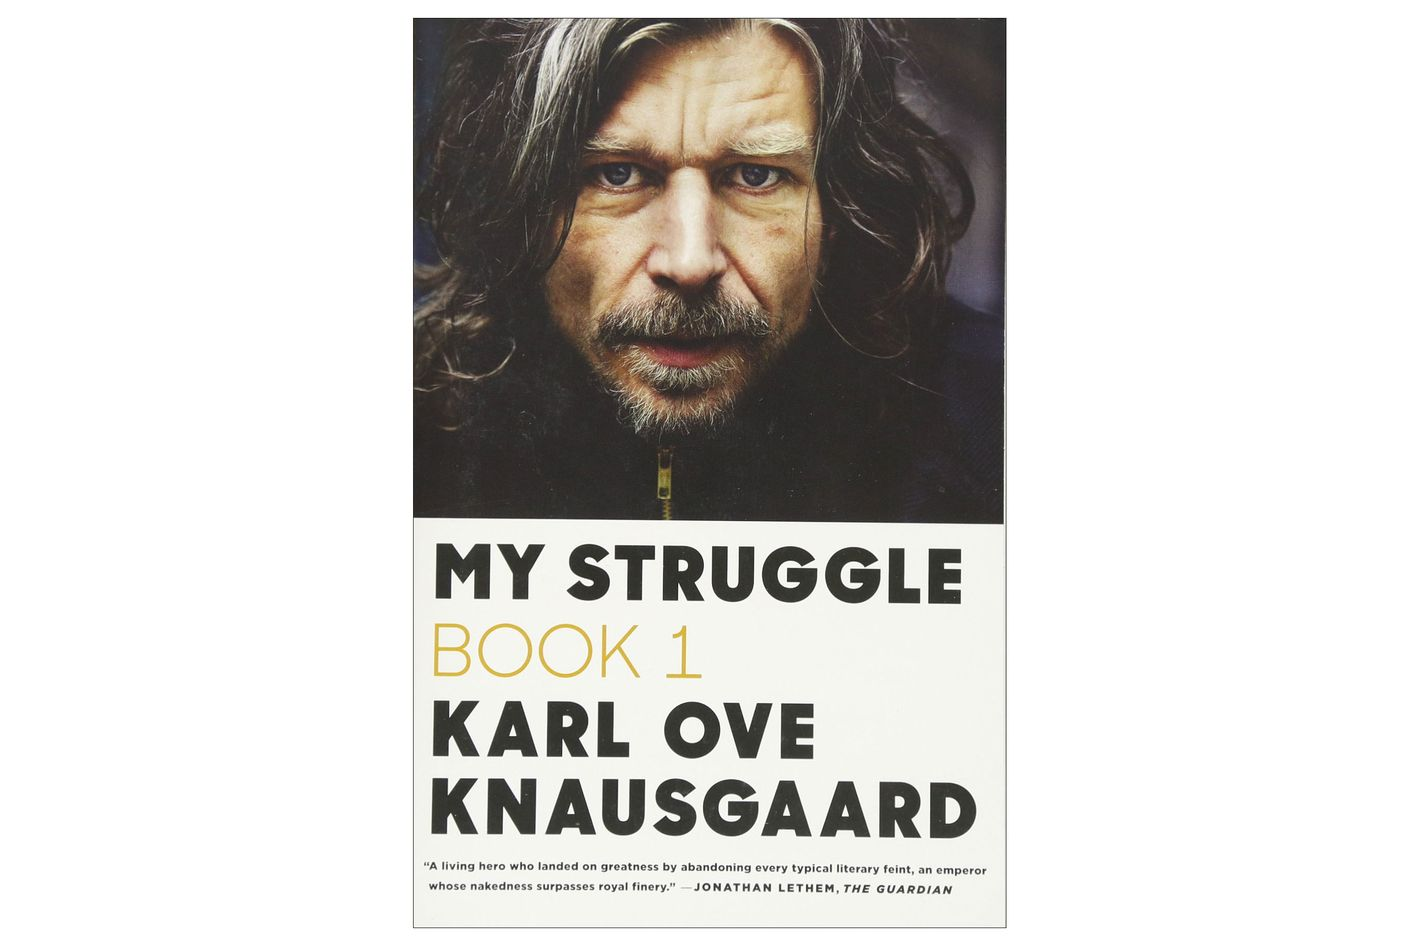 My Struggle: Book One by Karl Ove Knausgaard